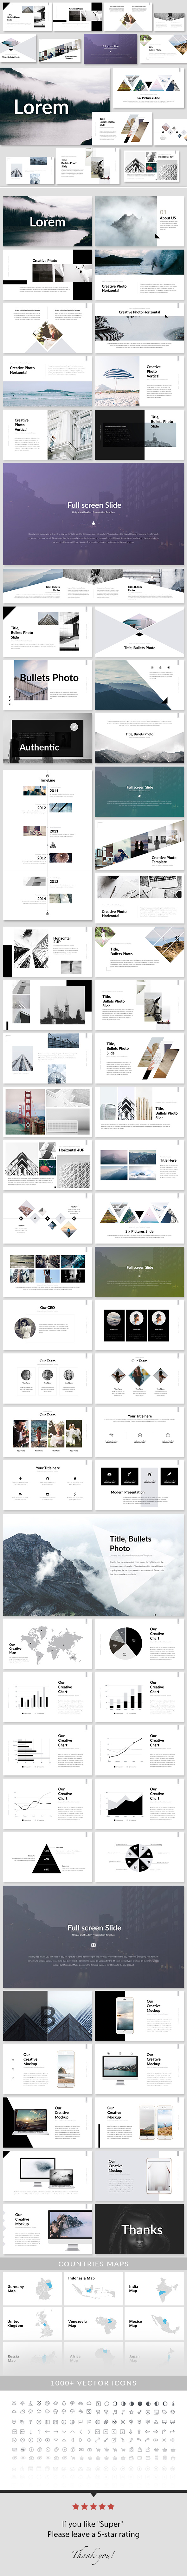 Lorem - PowerPoint Presentation Template - Creative PowerPoint Templates